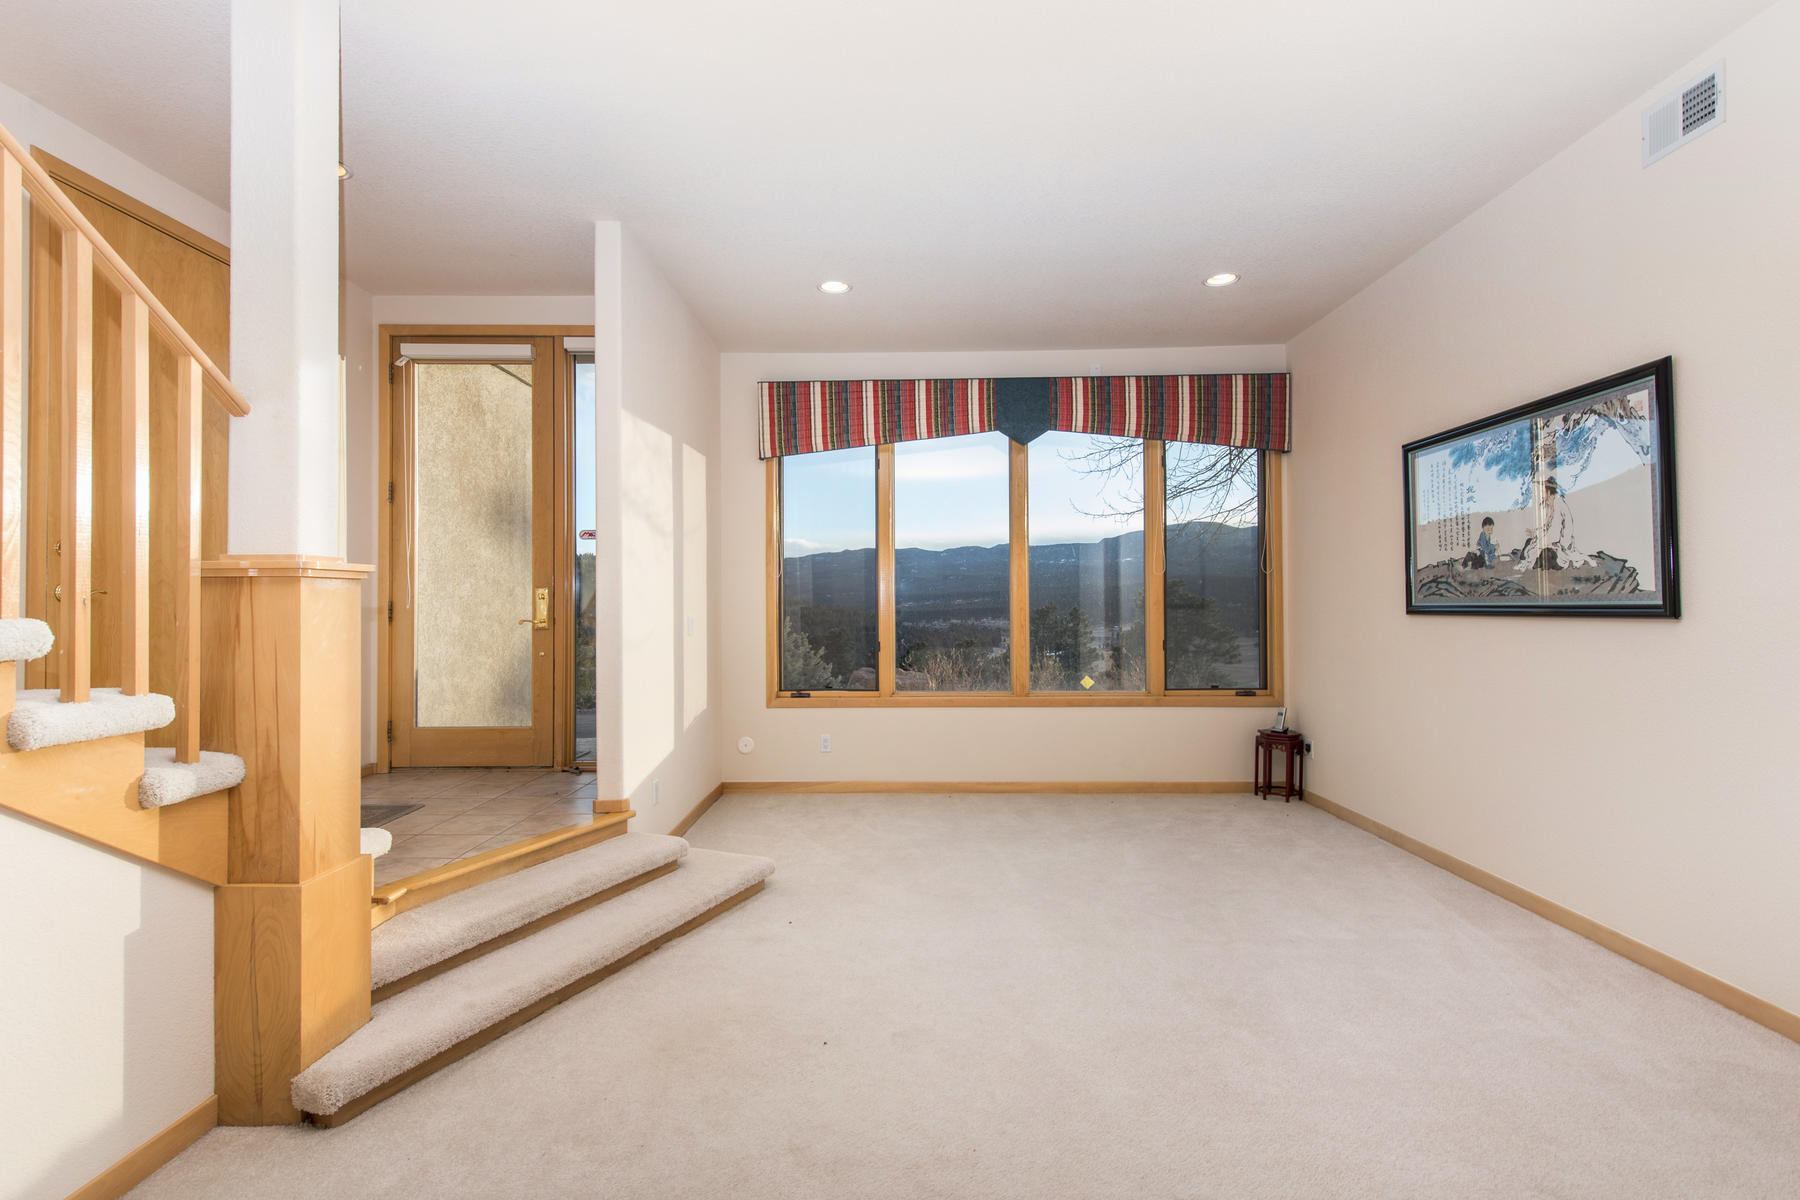 Additional photo for property listing at Where elegance and livability meet 7026 Timbers Drive Evergreen, Colorado 80439 United States